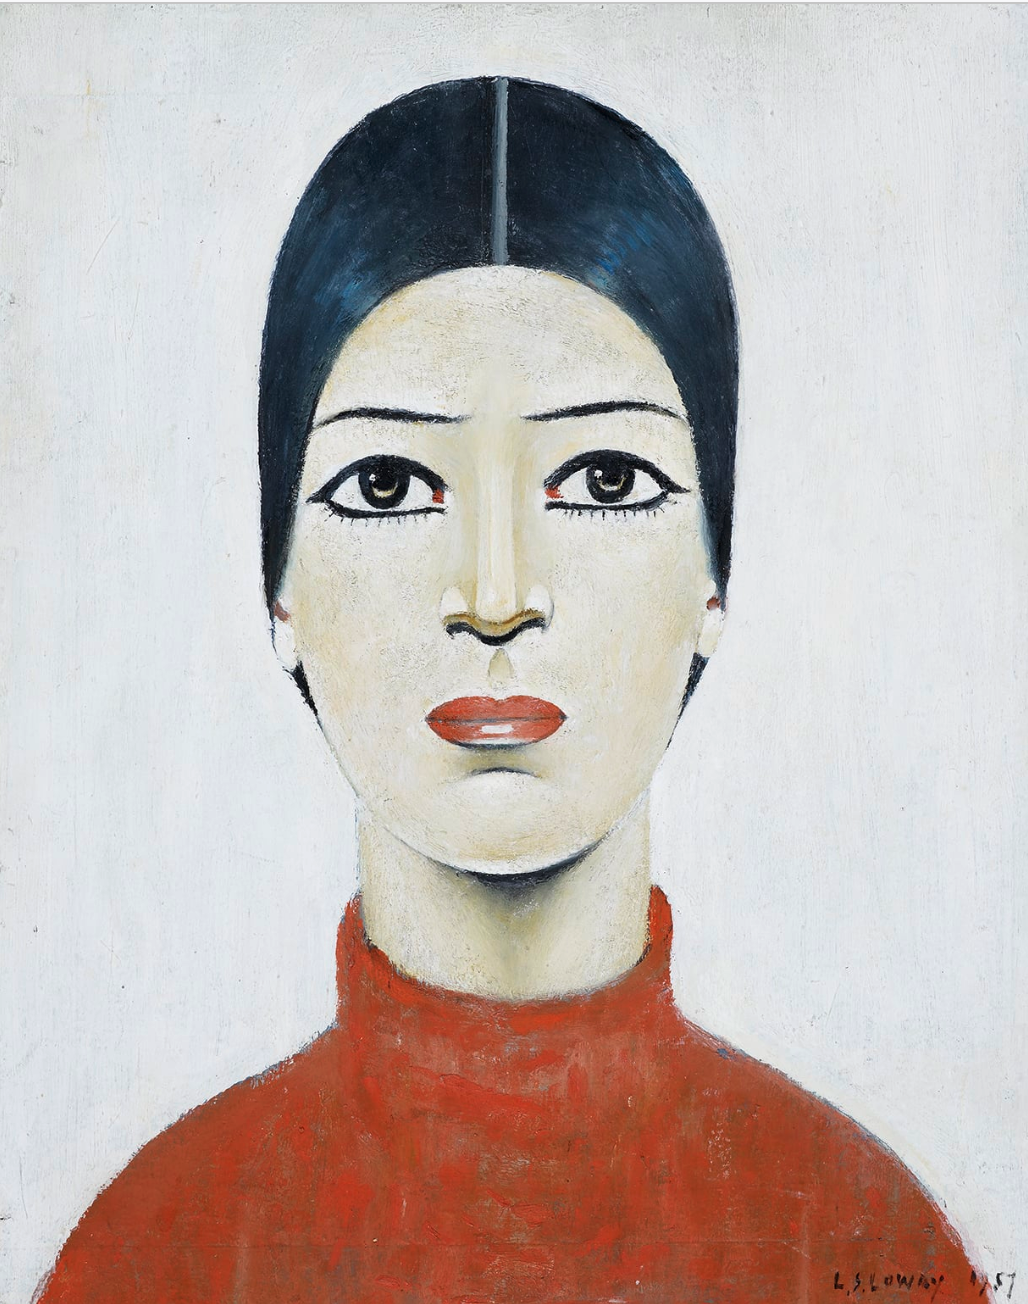 Portrait of Ann (1957) by Laurence Stephen Lowry (1887 - 1976), English artist.